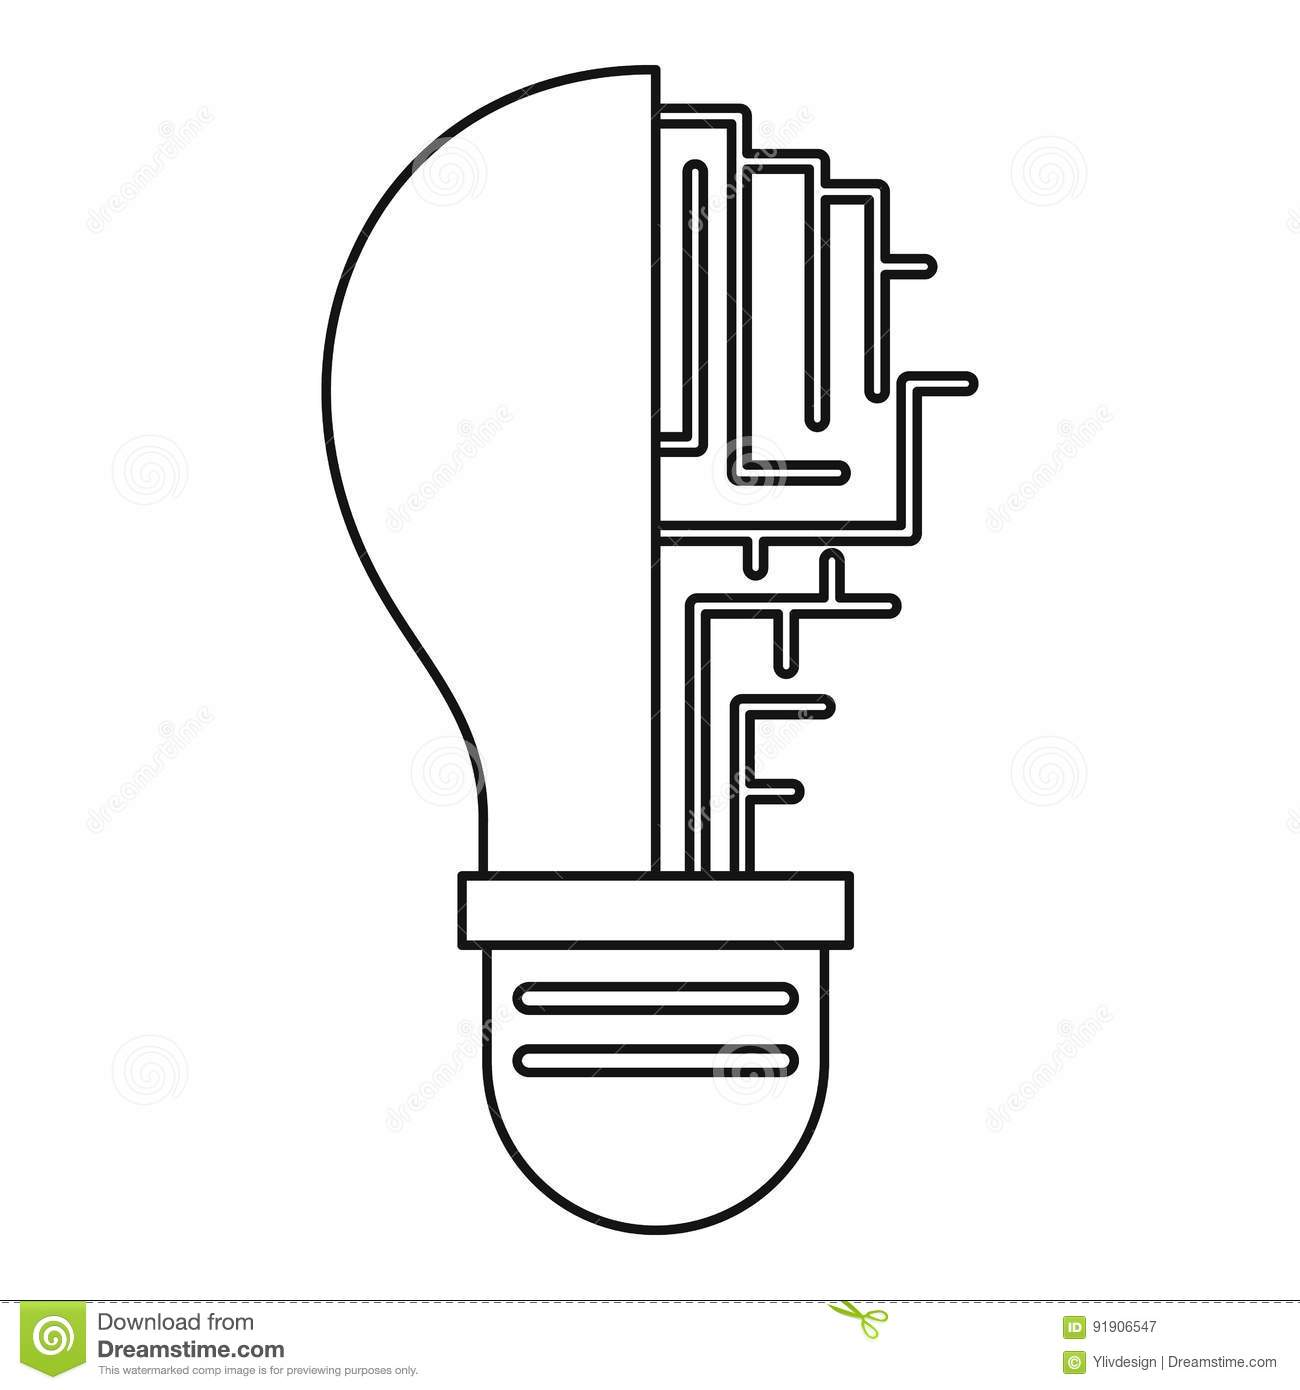 Compact Fluorescent Lamp Circuit Diagram Finest Image Result For Bulb Fabulous Board Inside Light Icon Outline Stock Vector Of Imagination With